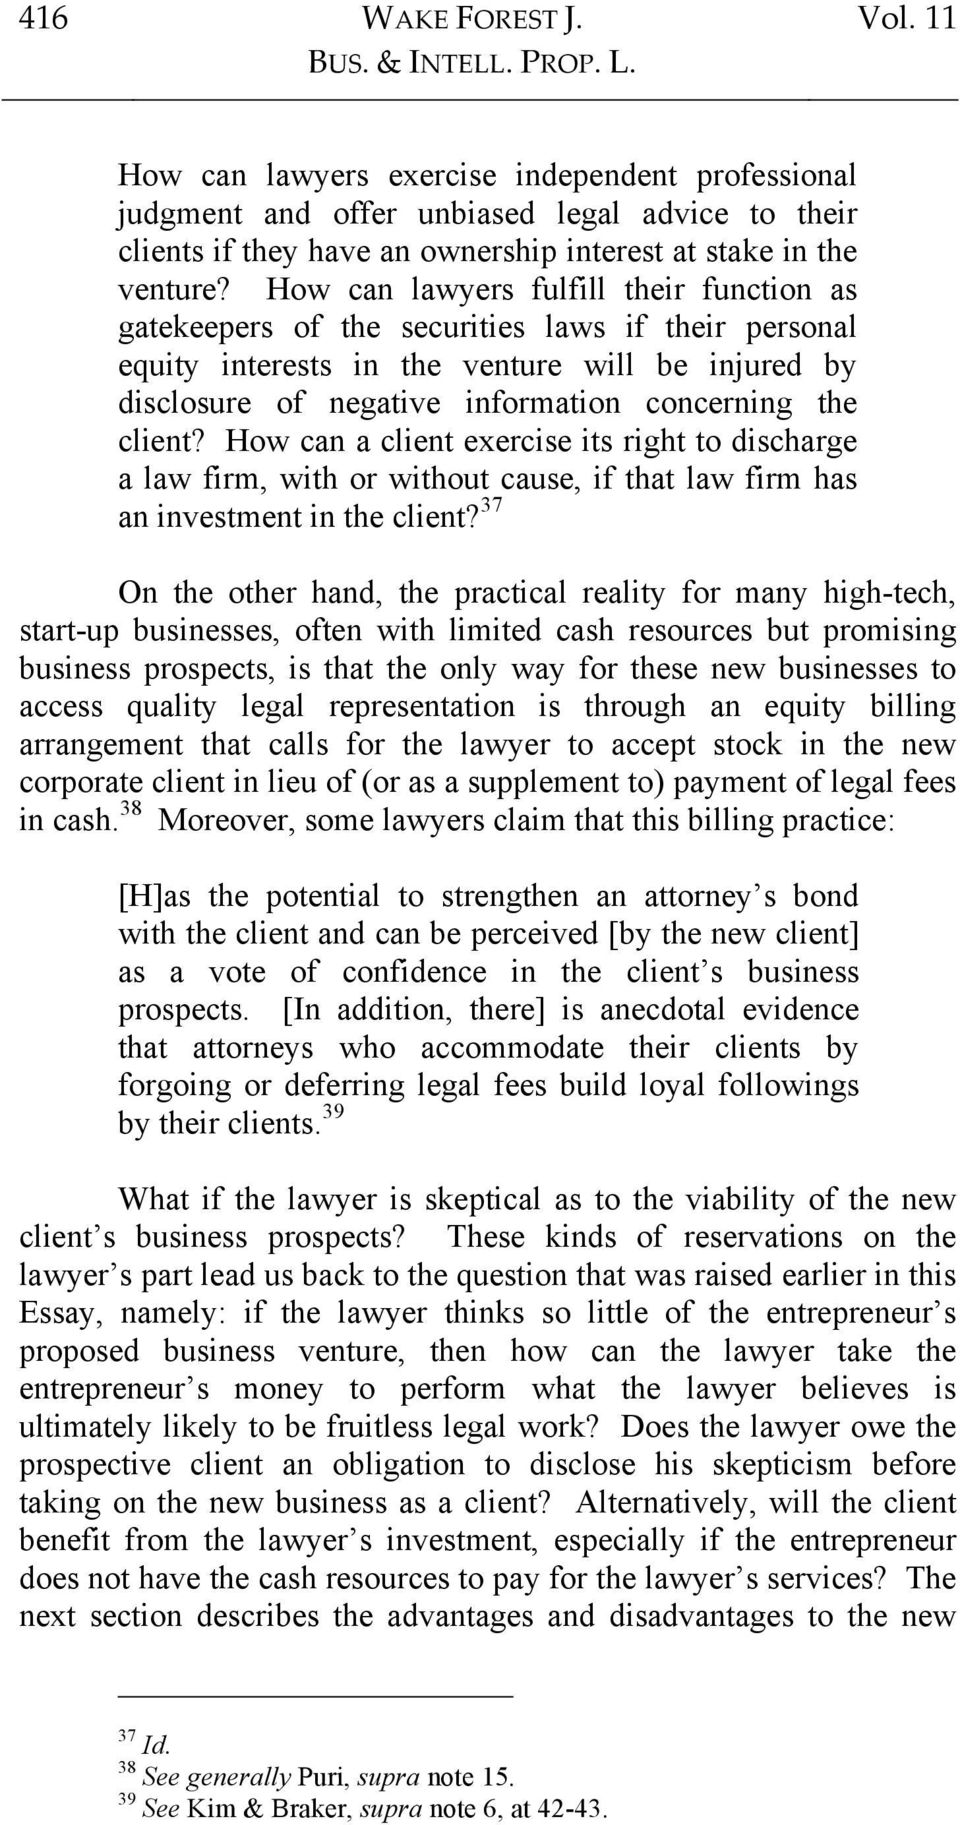 How can lawyers fulfill their function as gatekeepers of the securities laws if their personal equity interests in the venture will be injured by disclosure of negative information concerning the